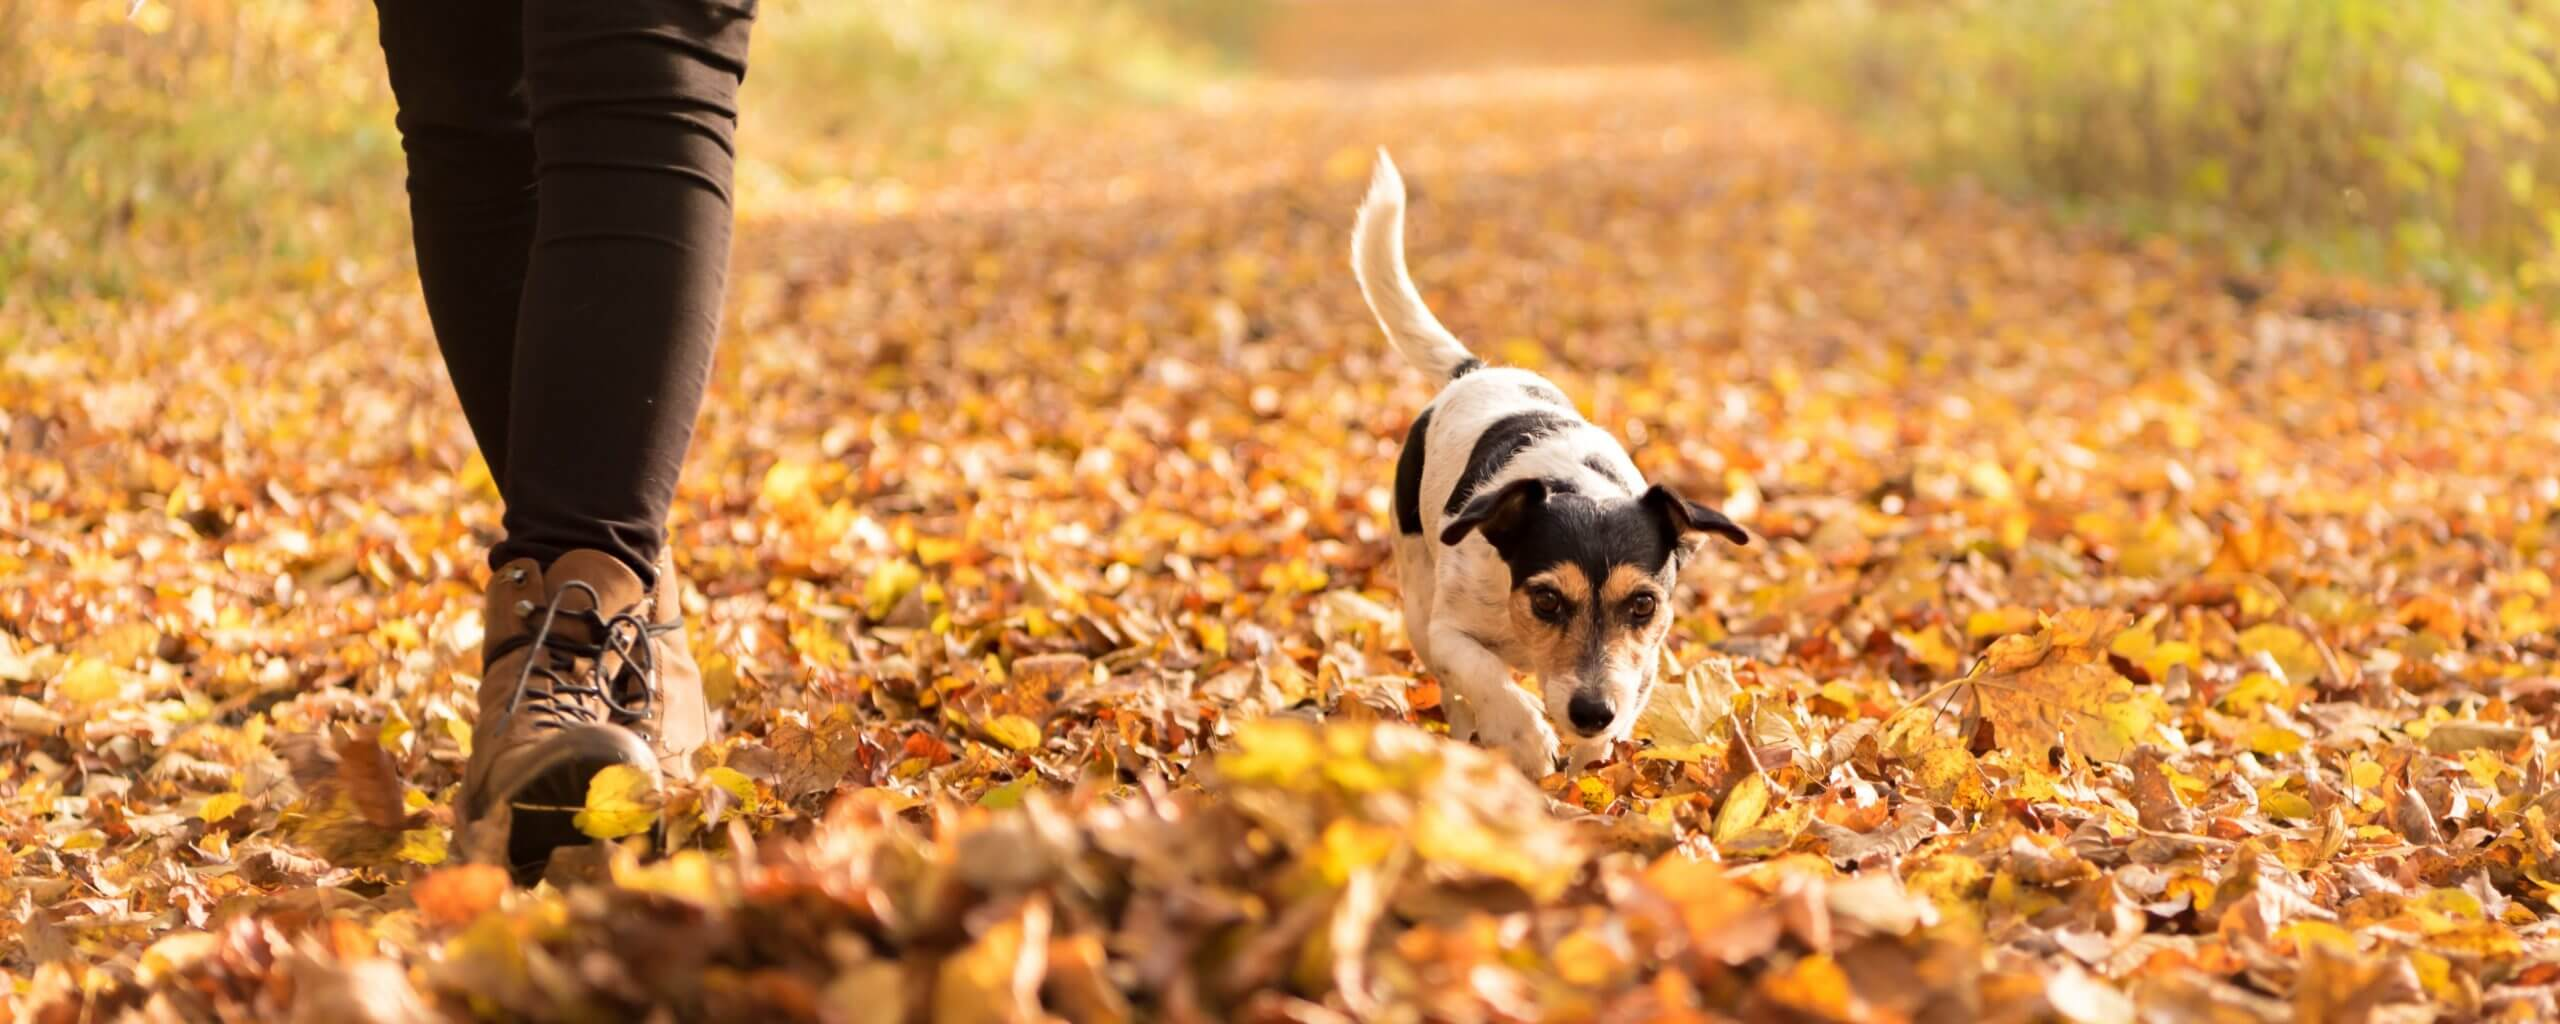 person walking in the fall leaves with a jack russell terrier